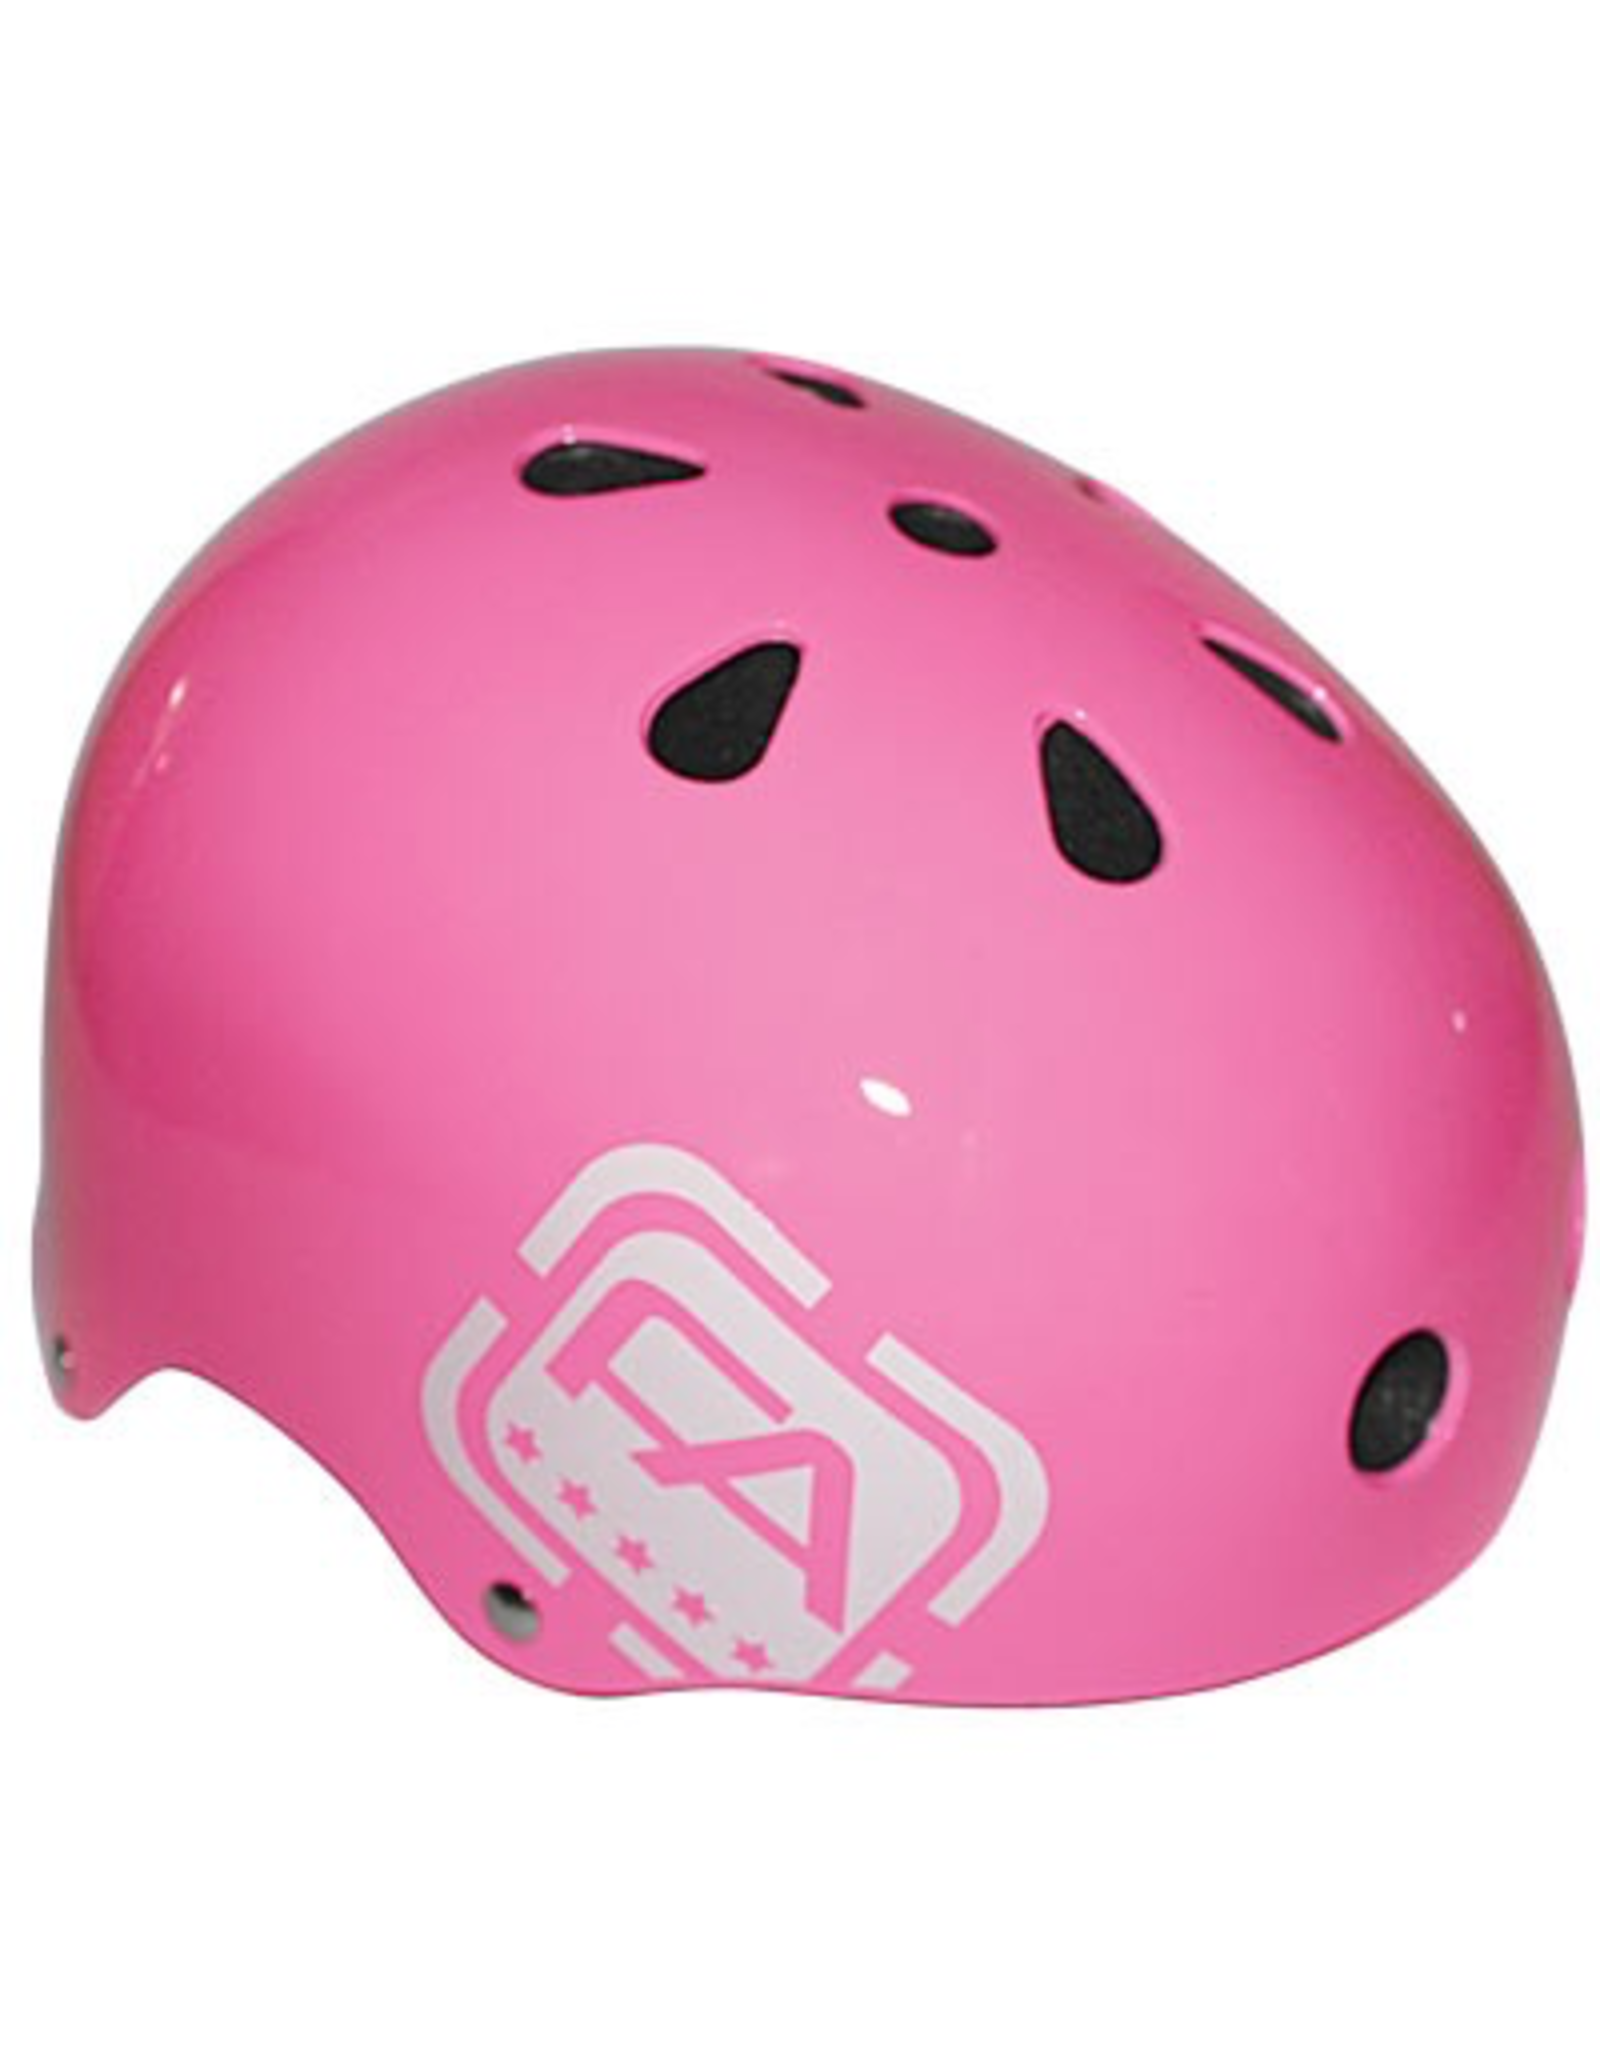 Free Agent Free Agent Street Helmet Gloss Pink One Size Fits All